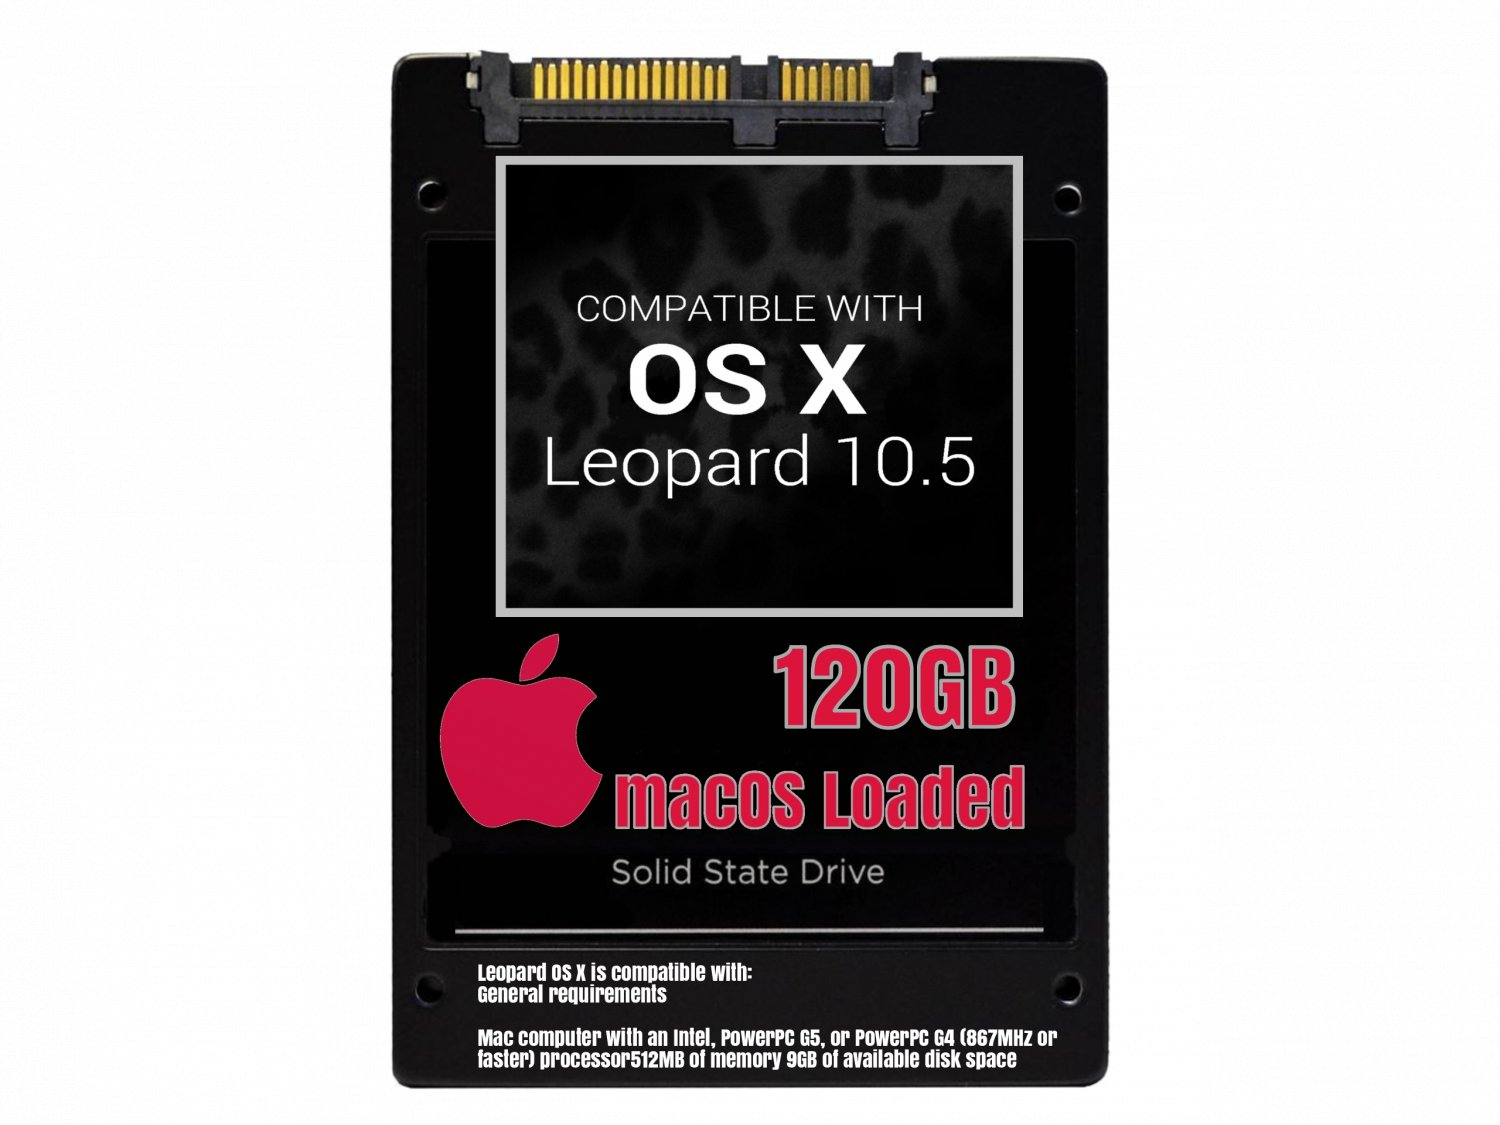 macOS Mac OS X 10.5 Leopard Preloaded on 120GB Solid State Drive